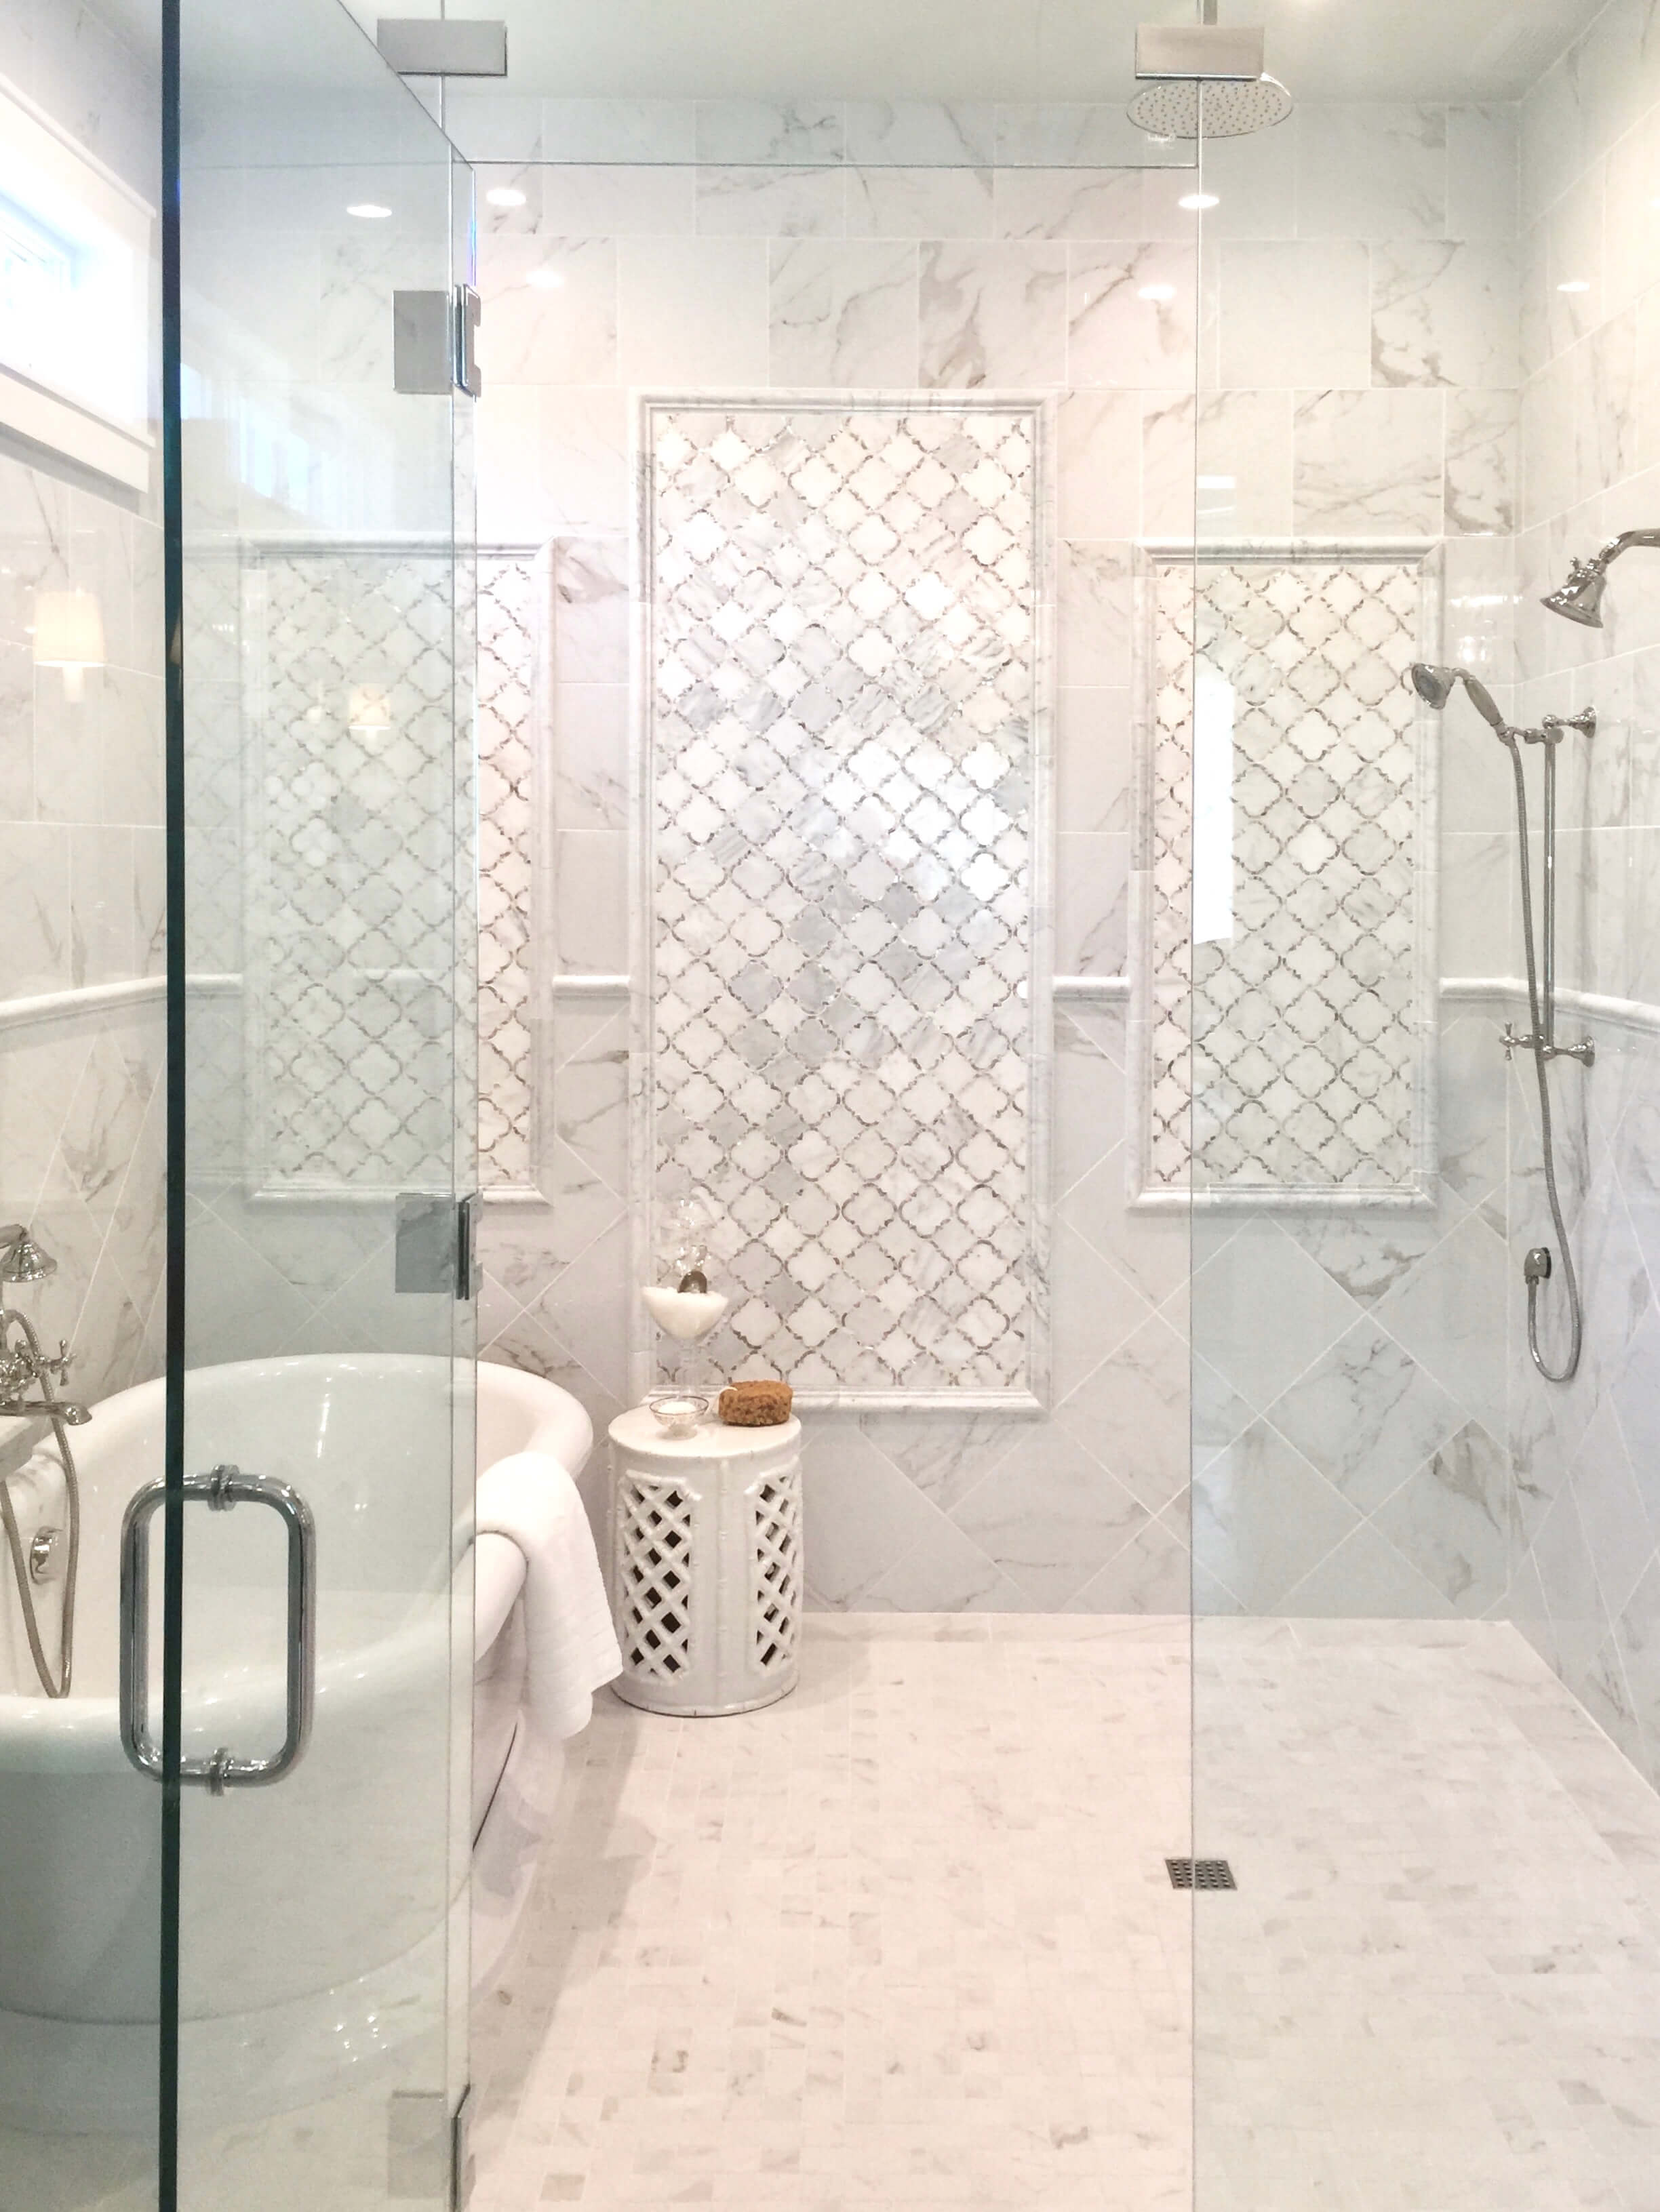 Free standing tub sitting pretty in the oversized shower of this master bath in the Southern Living Showcase Home, designed by Chairma Design Group. #freestandingtub #tub #bathroomdesign #whitemarble